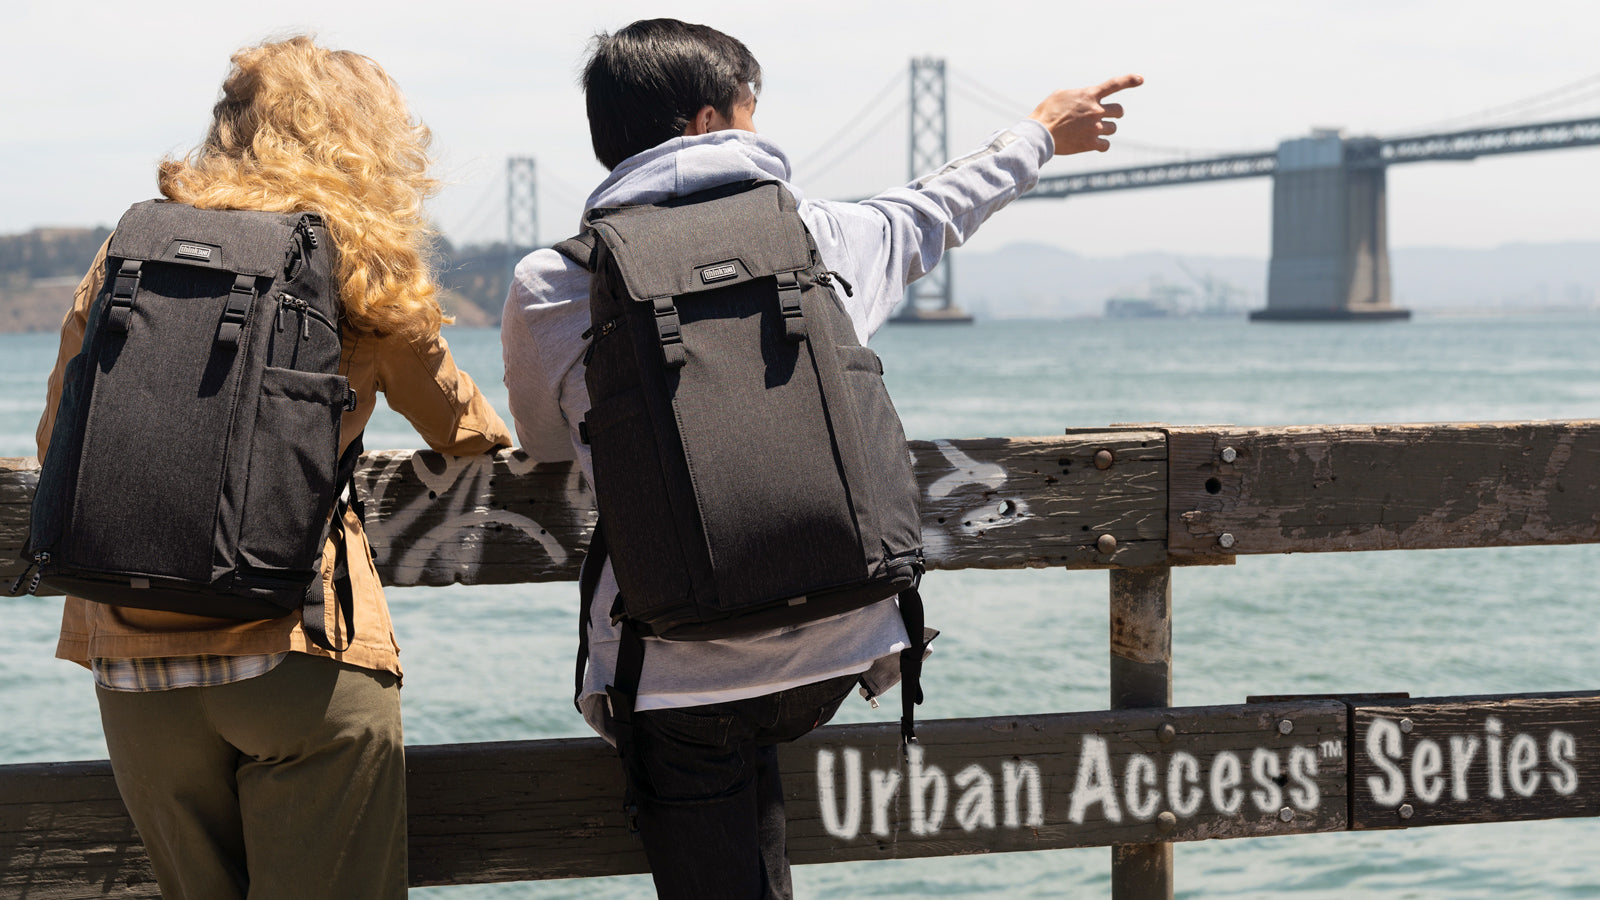 Easy to pack and even easier to access, the Urban Access enables you to get to your gear quickly—whether on the run or in the studio.